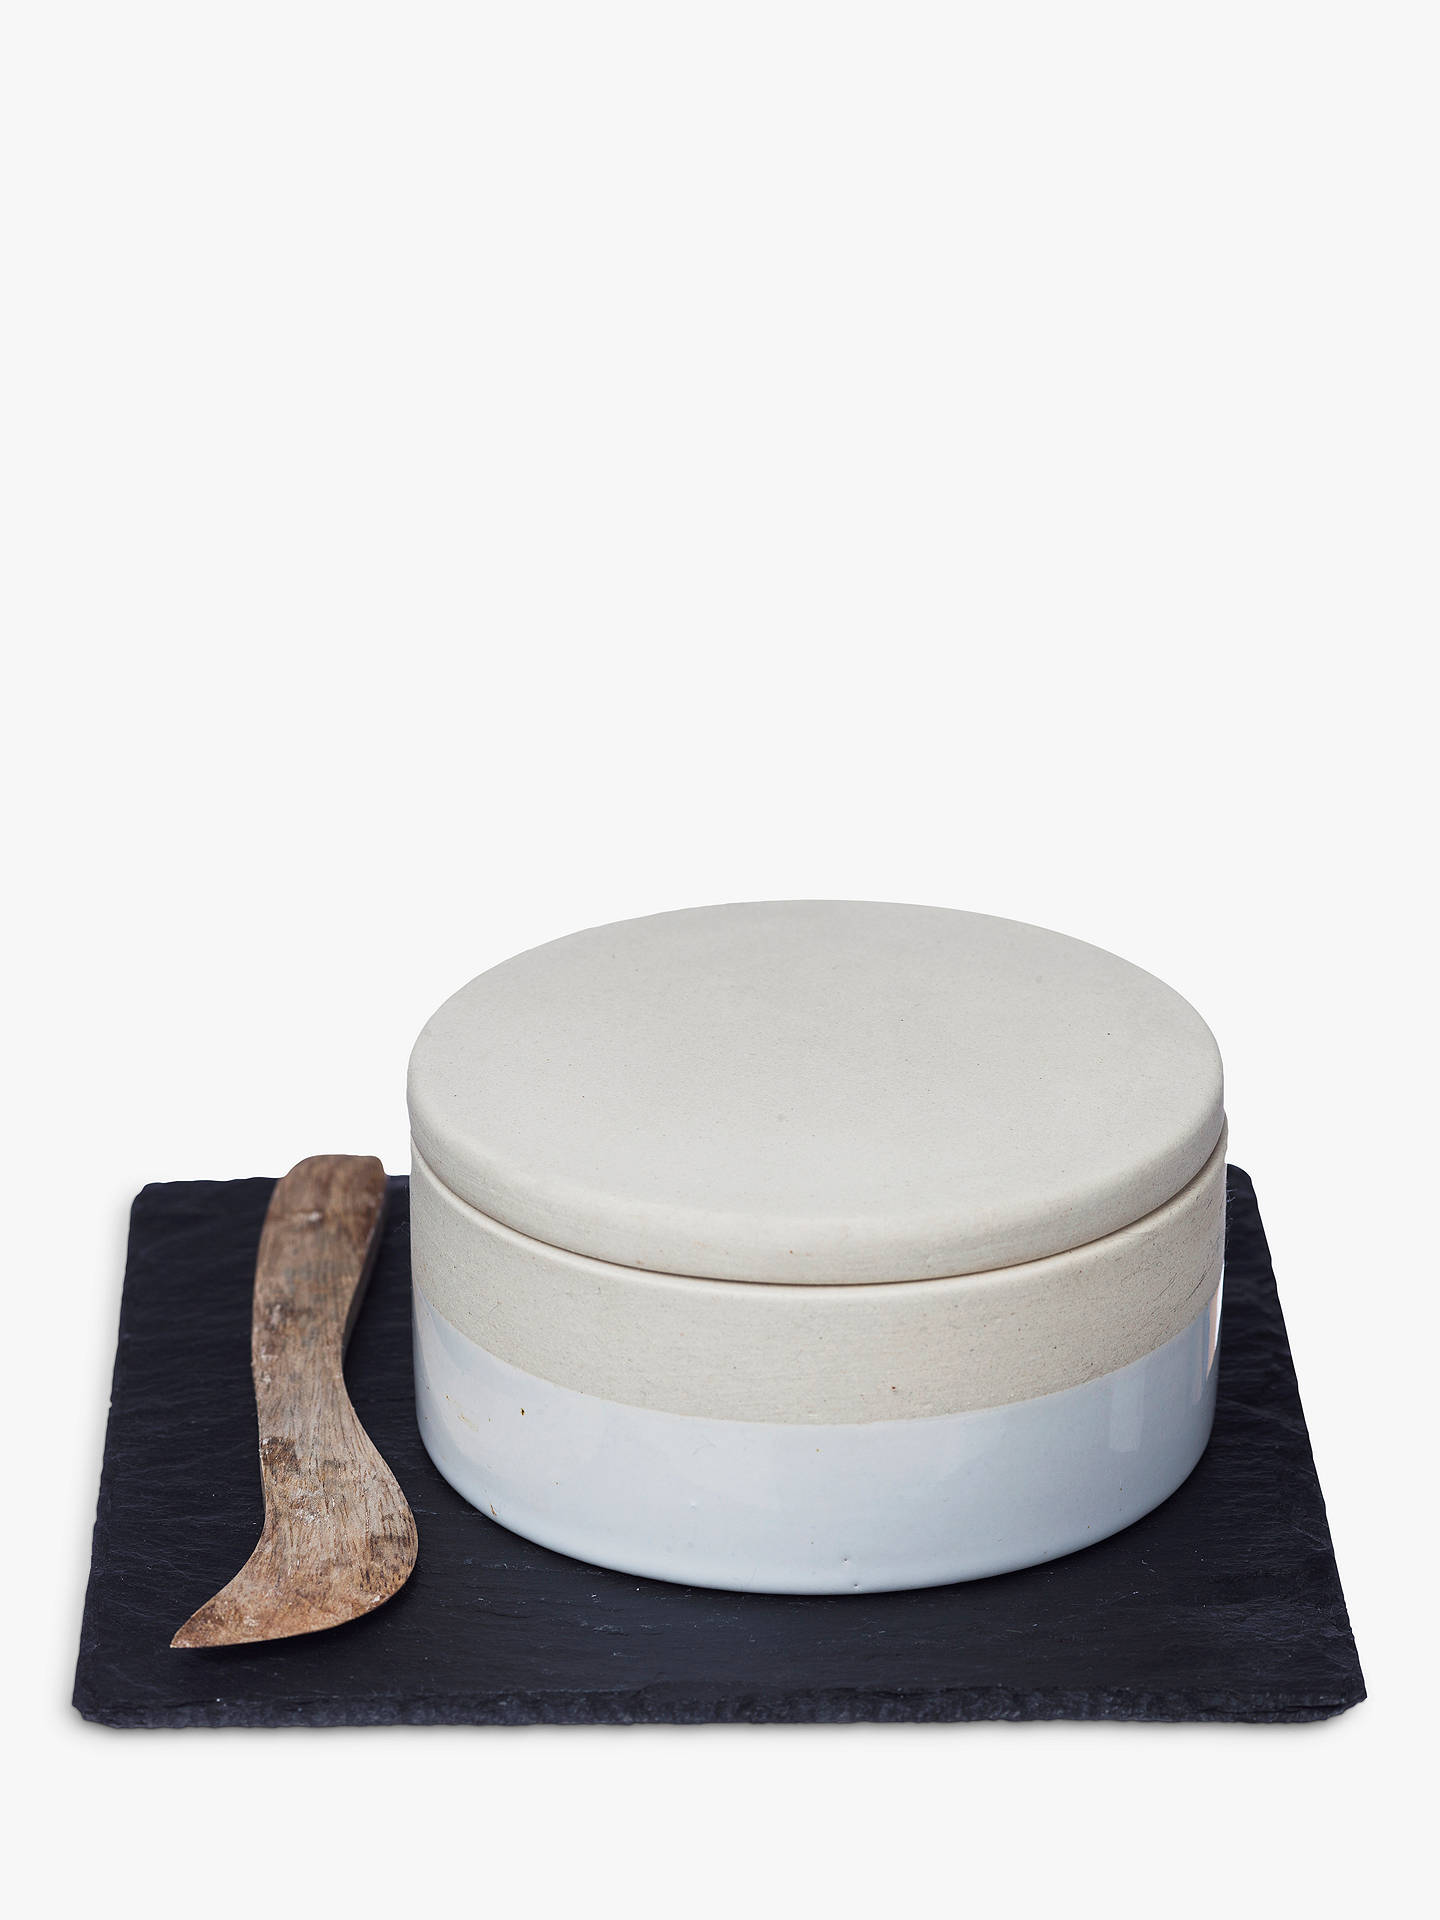 BuyJust Slate Camembert Baker and Knife Online at johnlewis.com